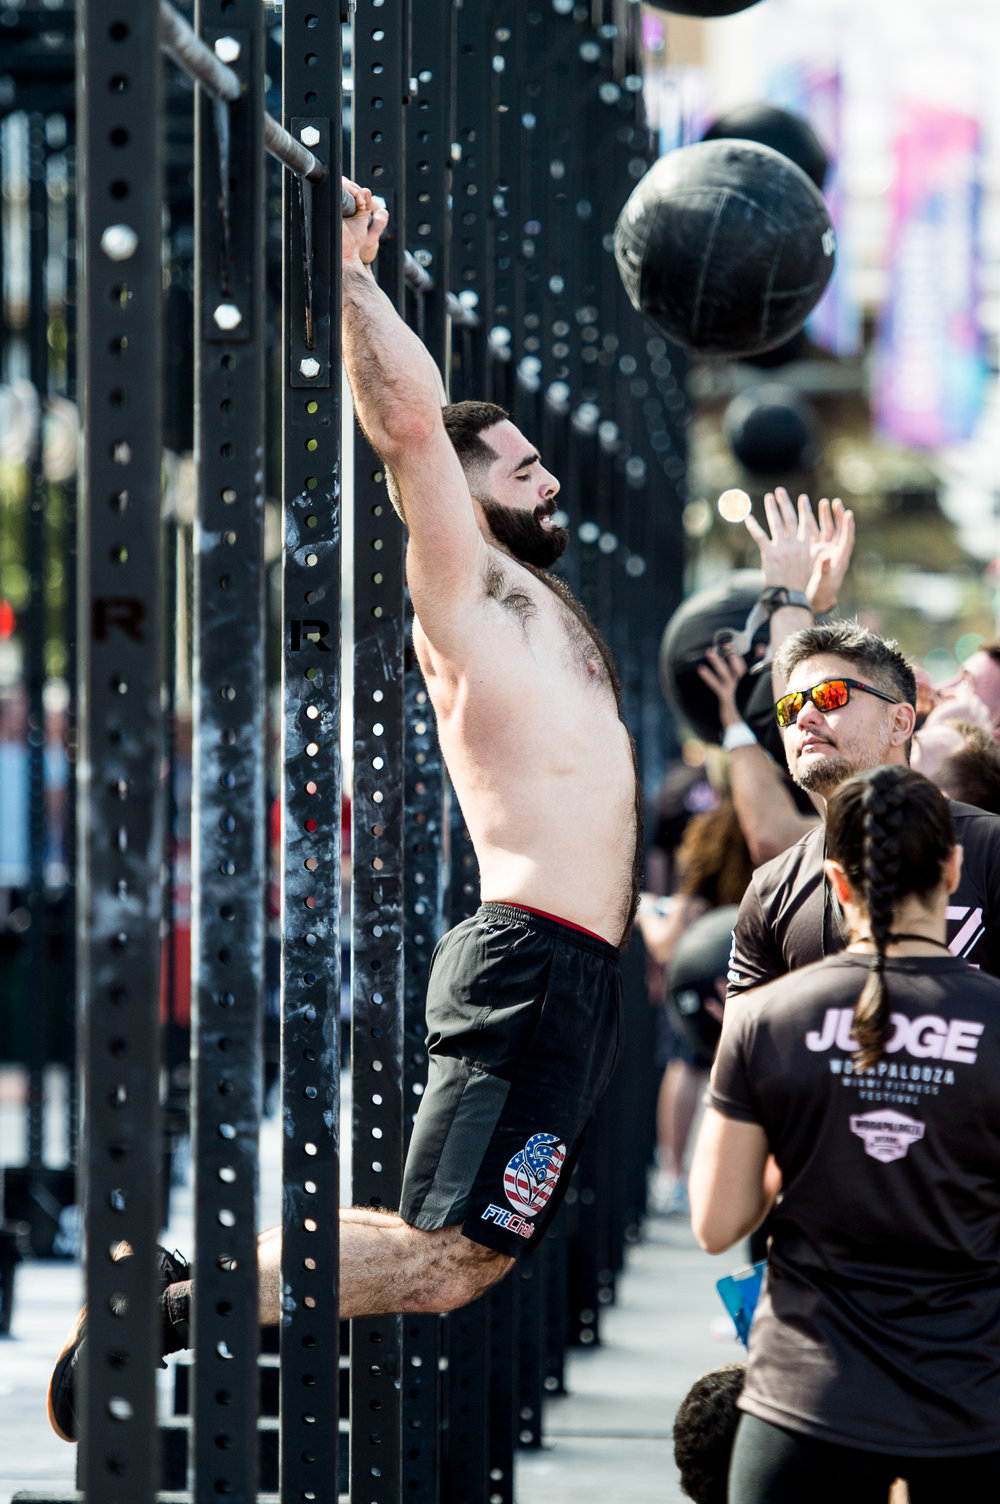 2018 Wodapalooza - Day 1, Photo Alessio Neri-001-4a.jpg